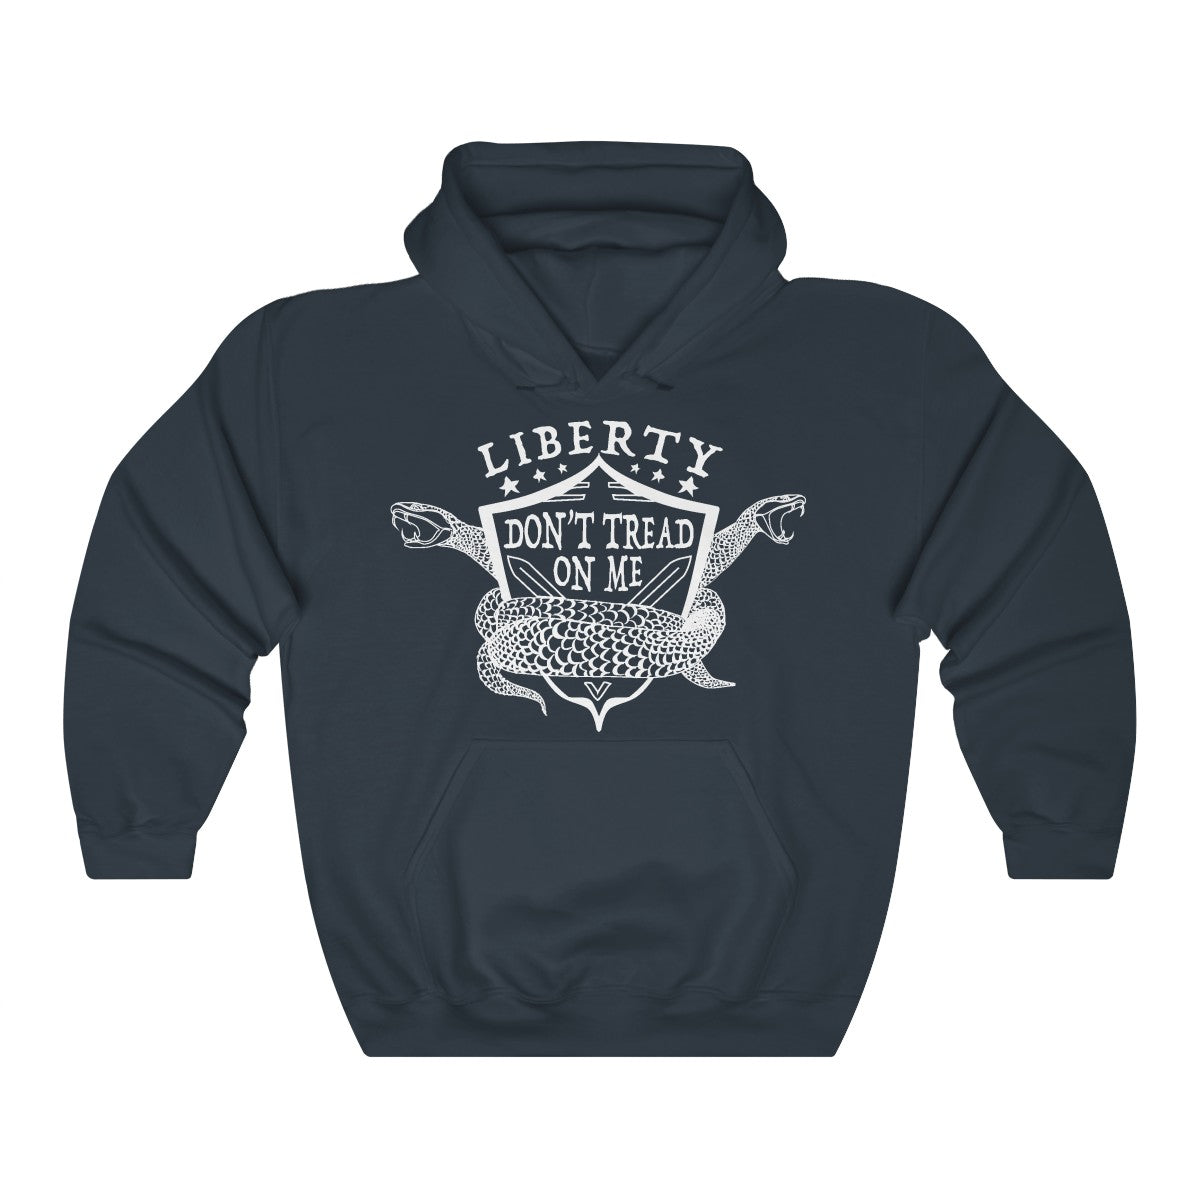 Liberty, Don't Tread - Hoodie